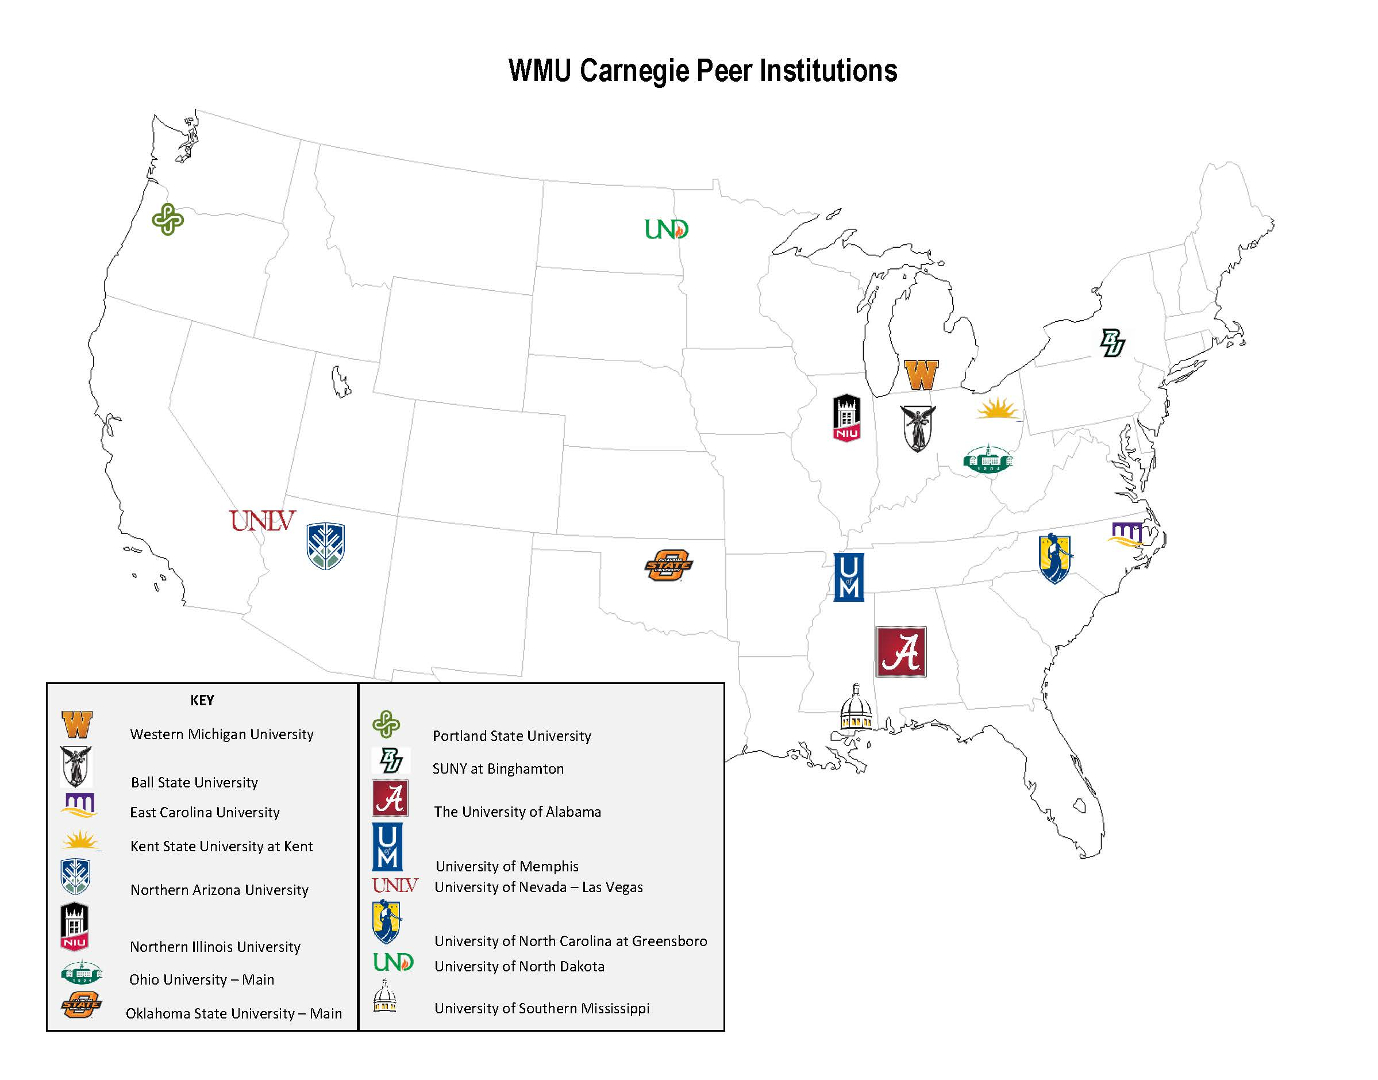 Map showing the main campus locations of WMU's Carnegie peer institutions